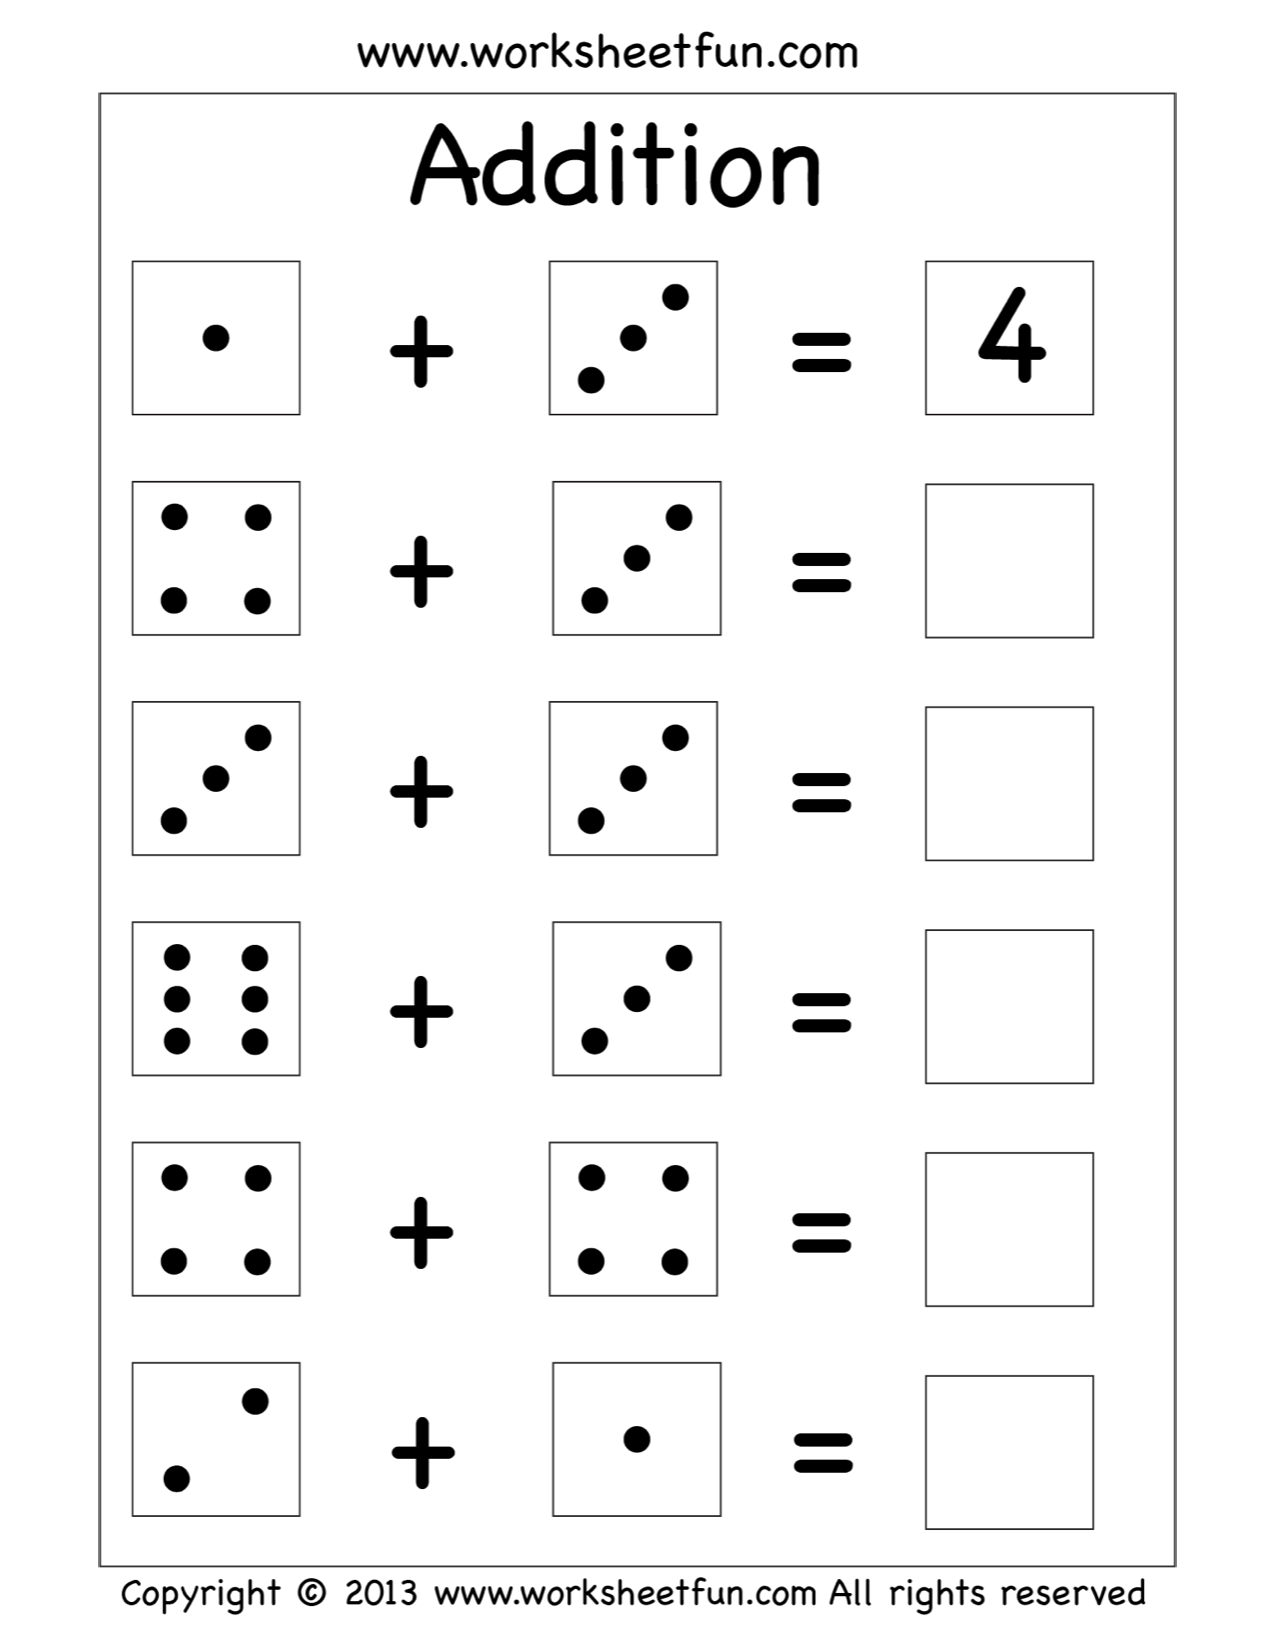 Addition Worksheet With Images